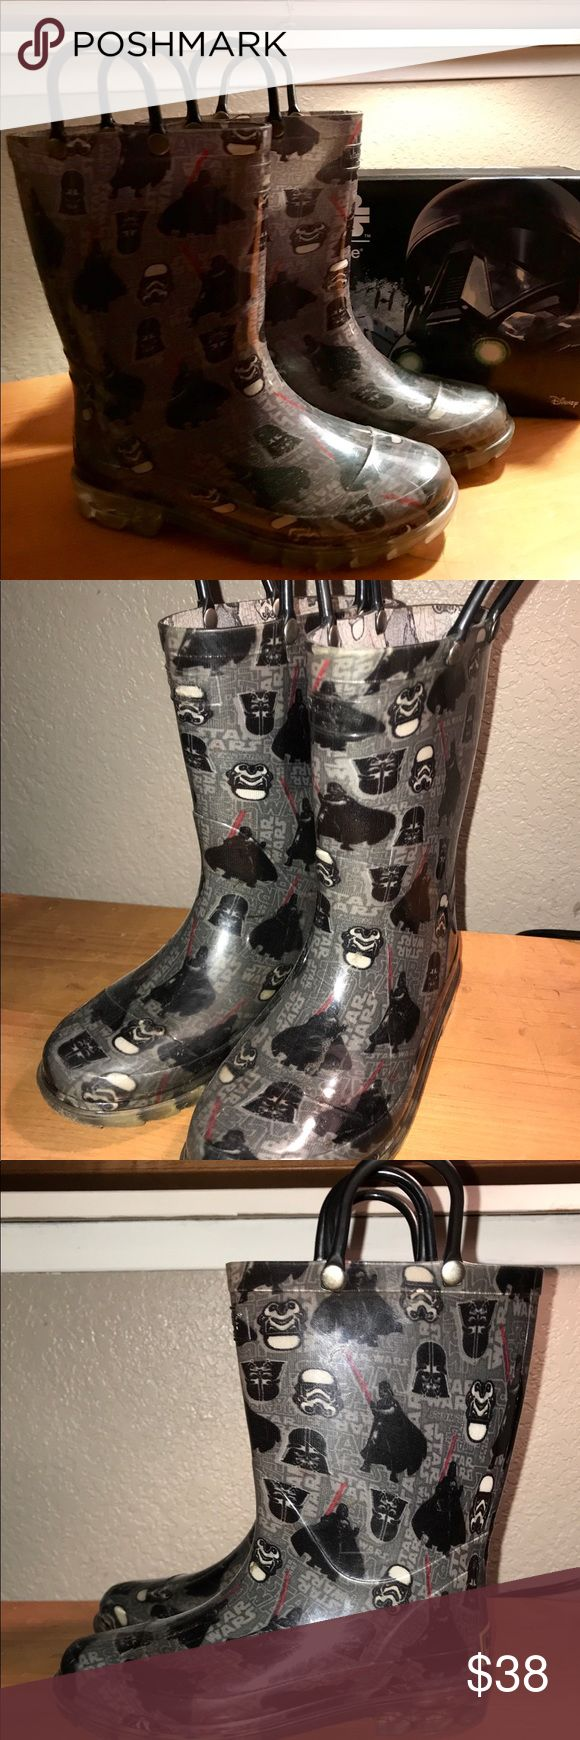 STAR WARS Western Chief boys Rain Boots Size 13 Great condition! Only worn a few times. Lights work on both boots! Your littlest Star Wars fan will adore these boots!!! Springtime is here!!! Western Chief Shoes Rain & Snow Boots